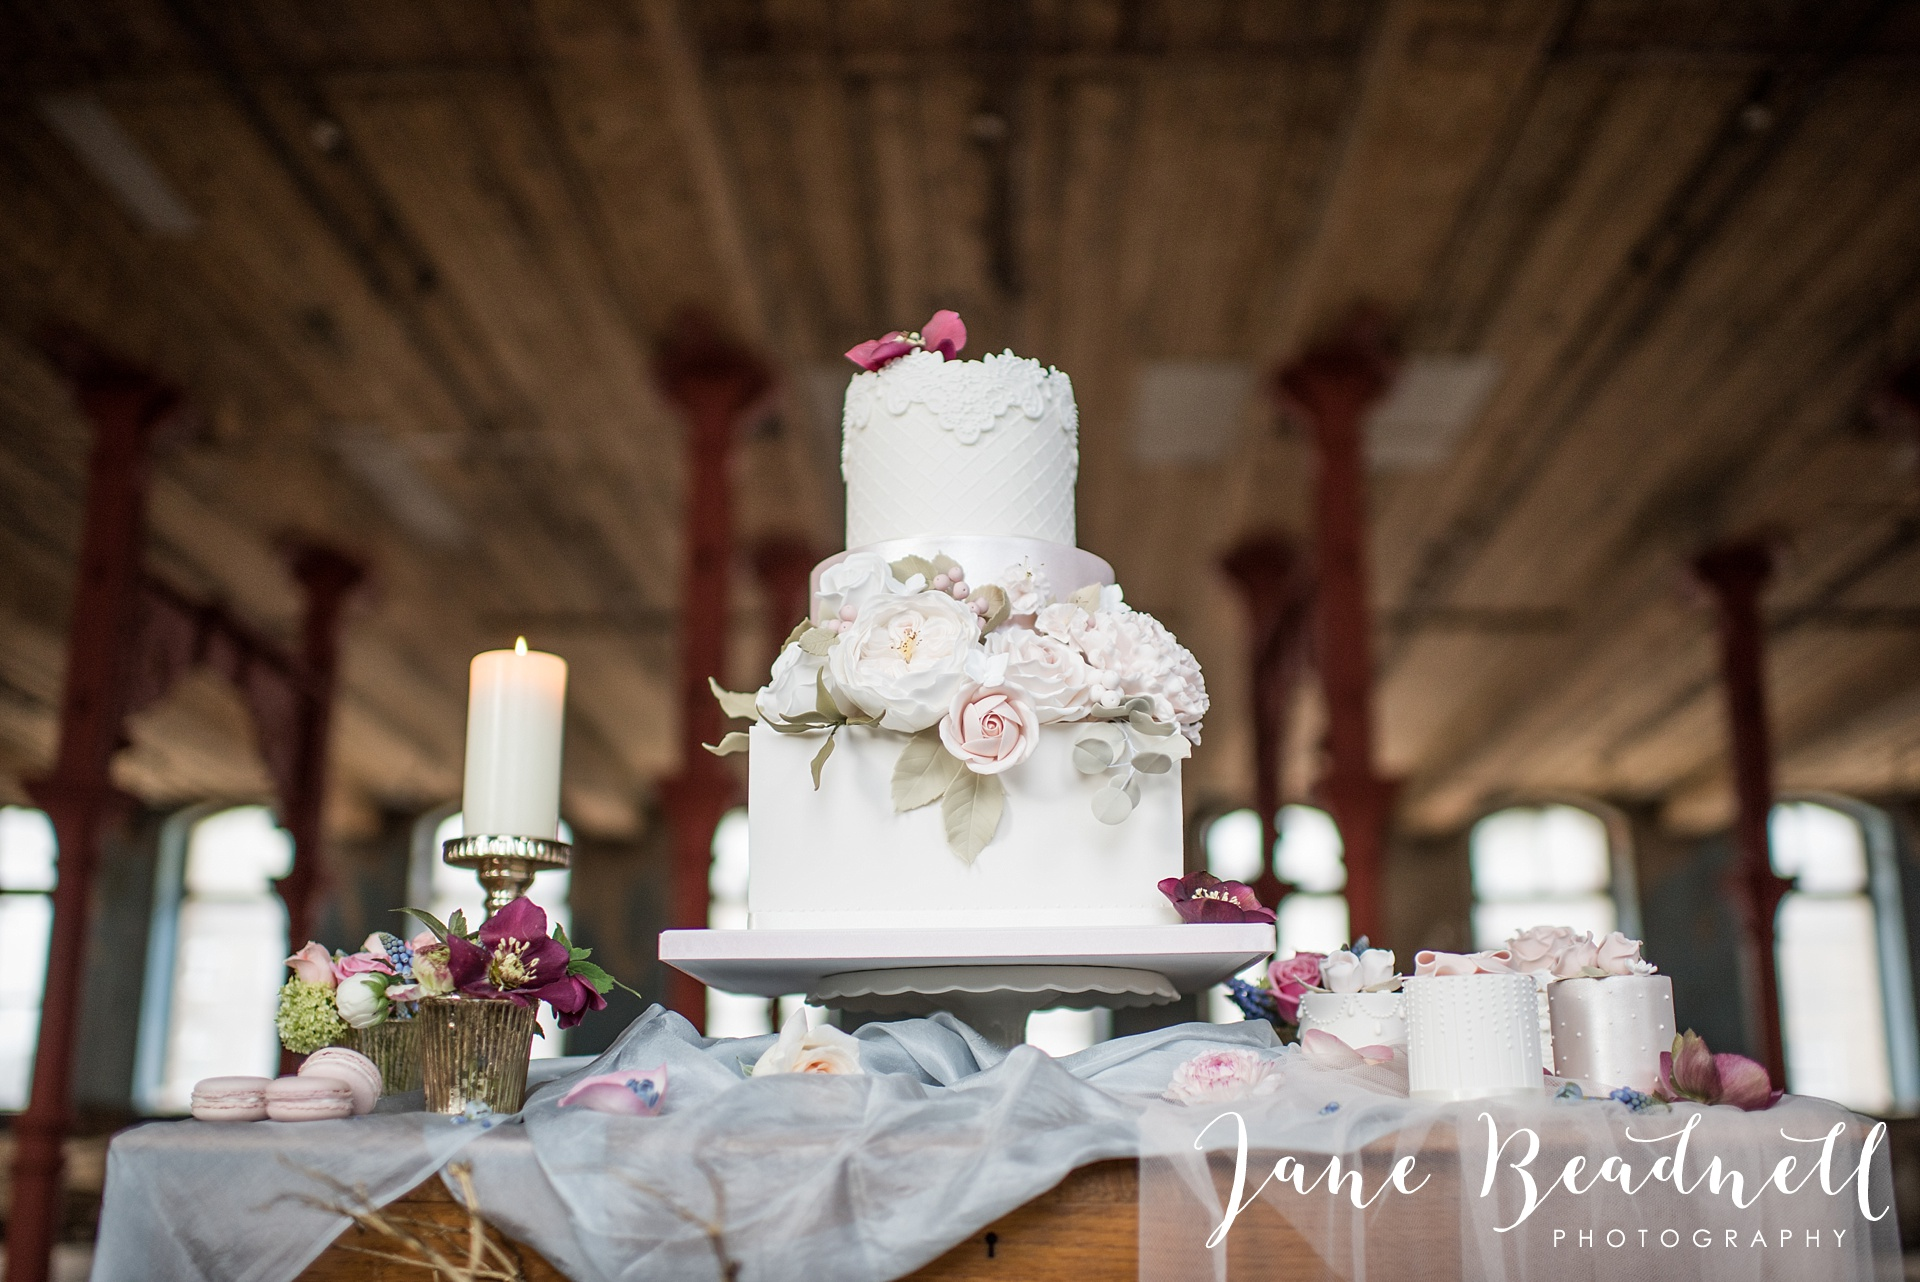 Ballet themed styled wedding shoot at Dalton Mills by Jane Beadnell Photography-0_0034